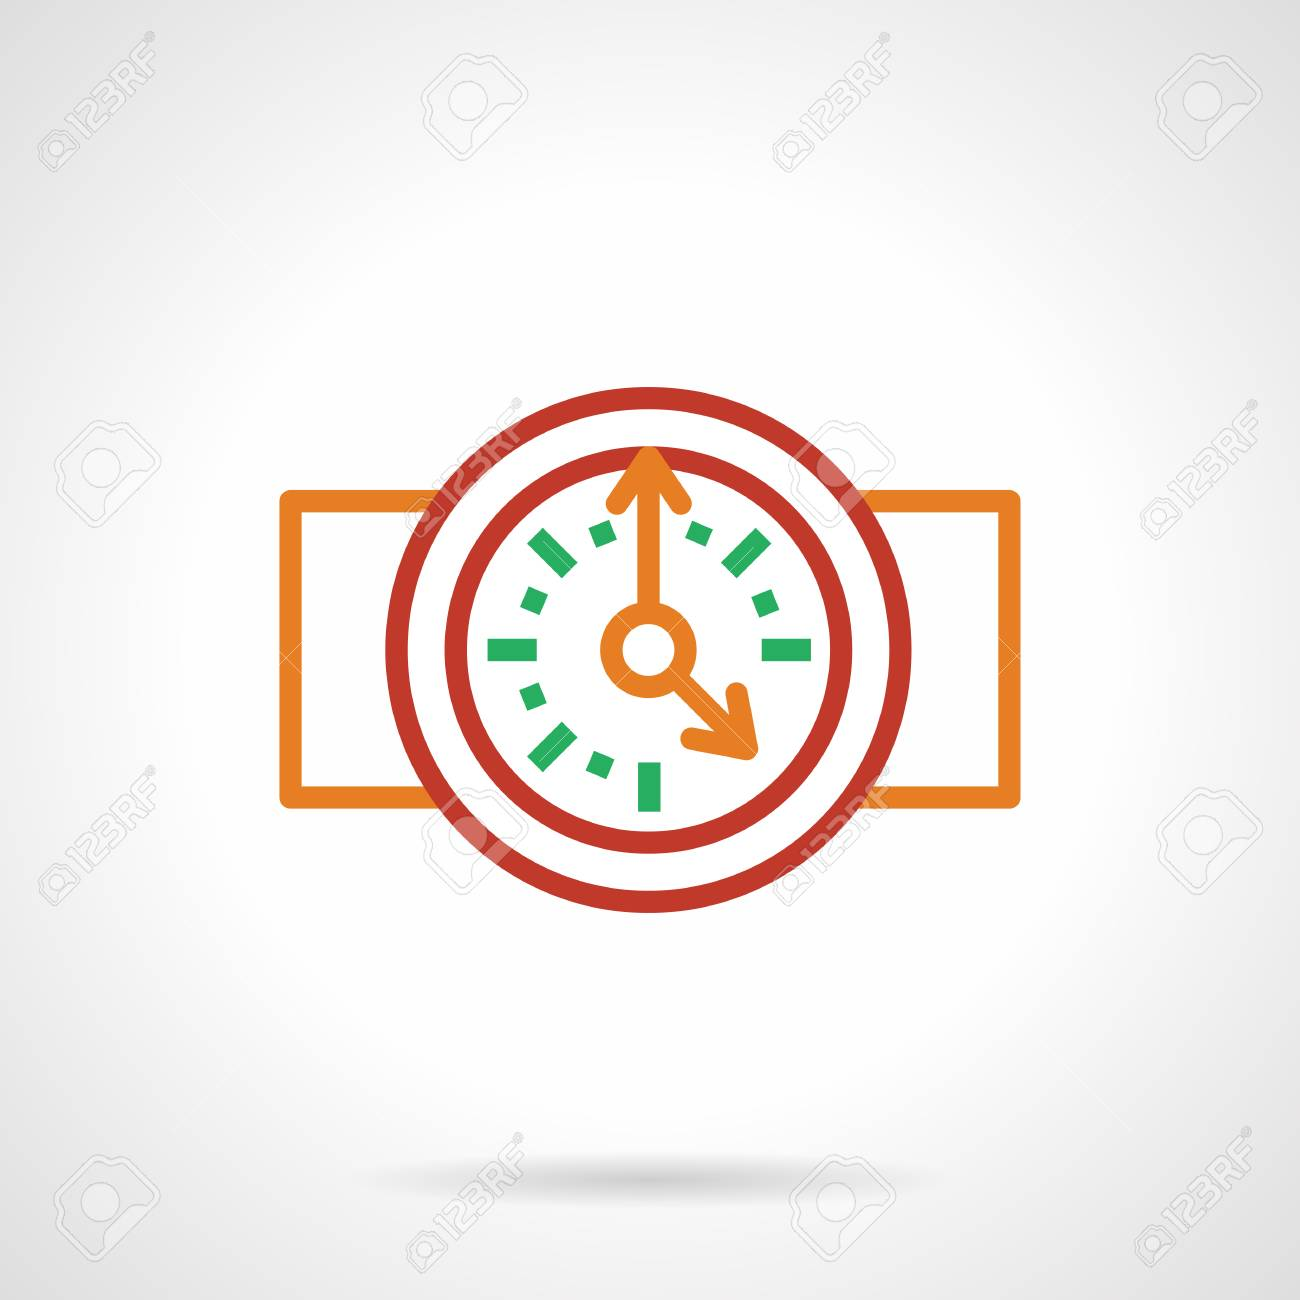 Rote Wanduhr Stock Photo